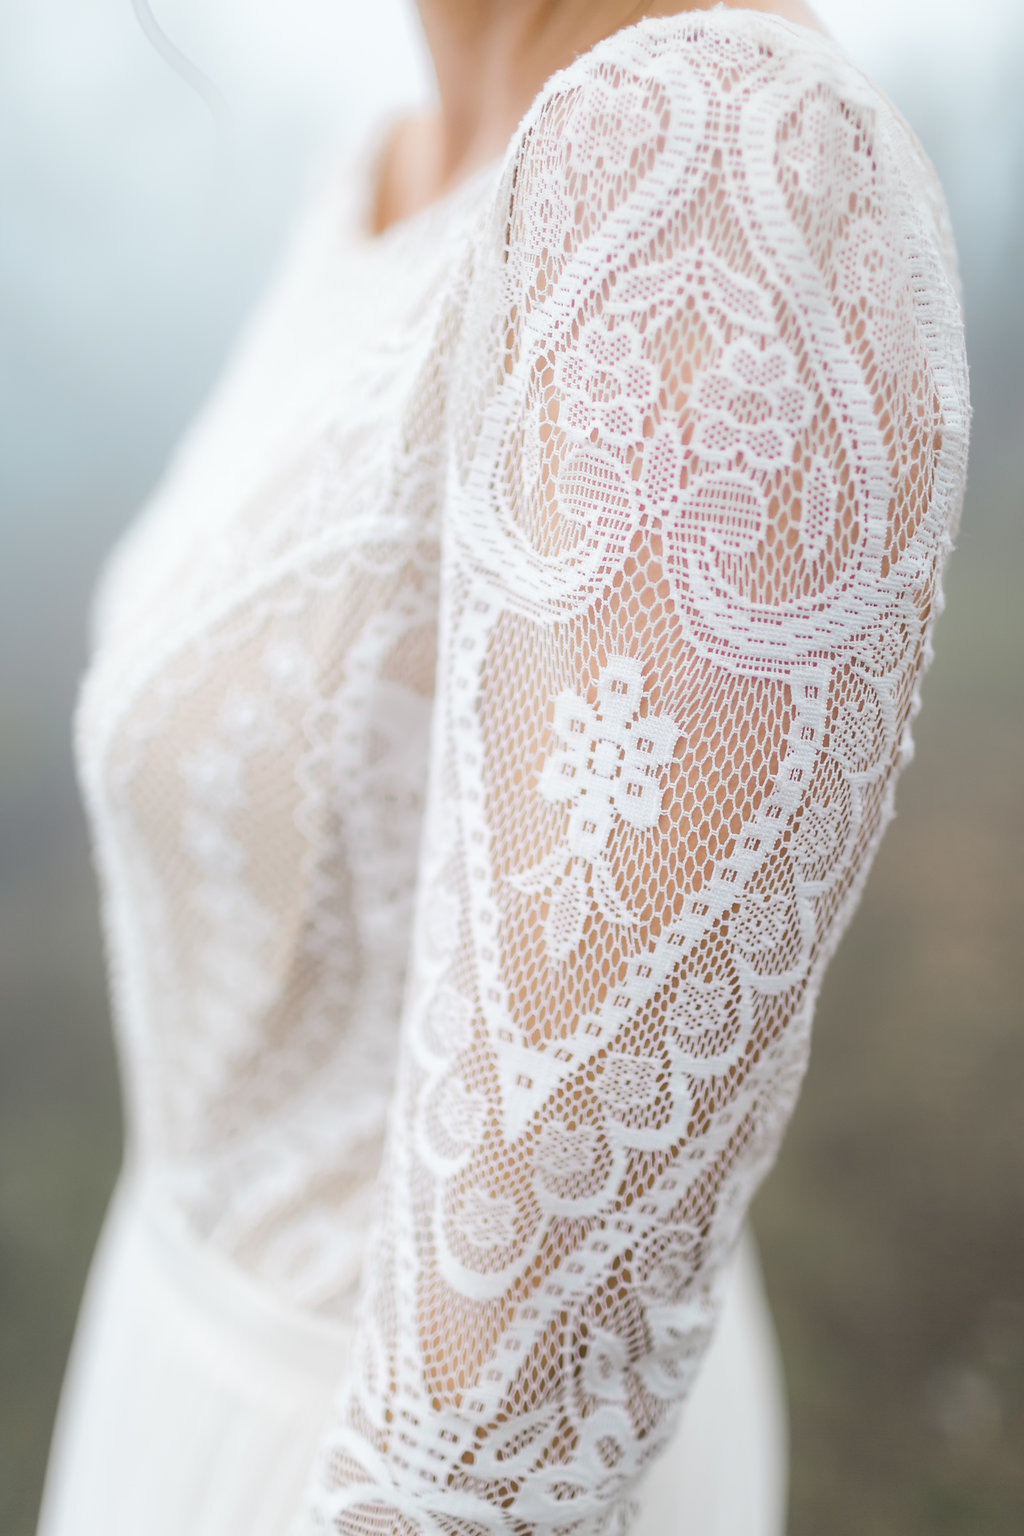 lace wedding gowns - photo by Natalie Schutt http://ruffledblog.com/misty-dream-vow-renewal-at-knapps-castle